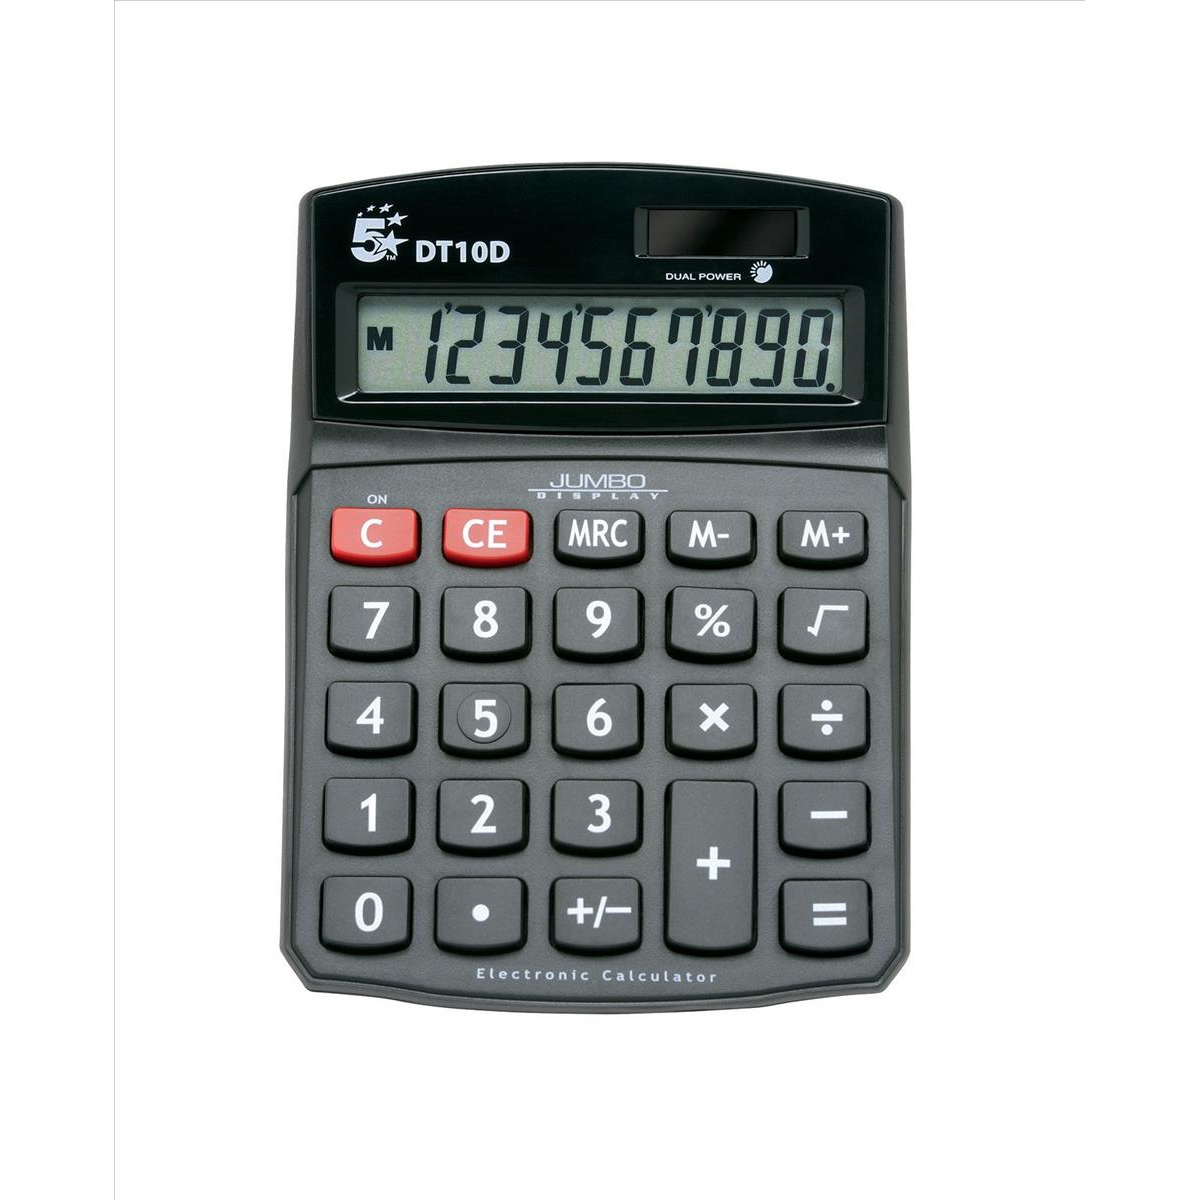 Calculators 5 Star Office Desktop Calculator 10 Digit Display 3 Key Memory Battery/Solar Power 94x32x124mm Black